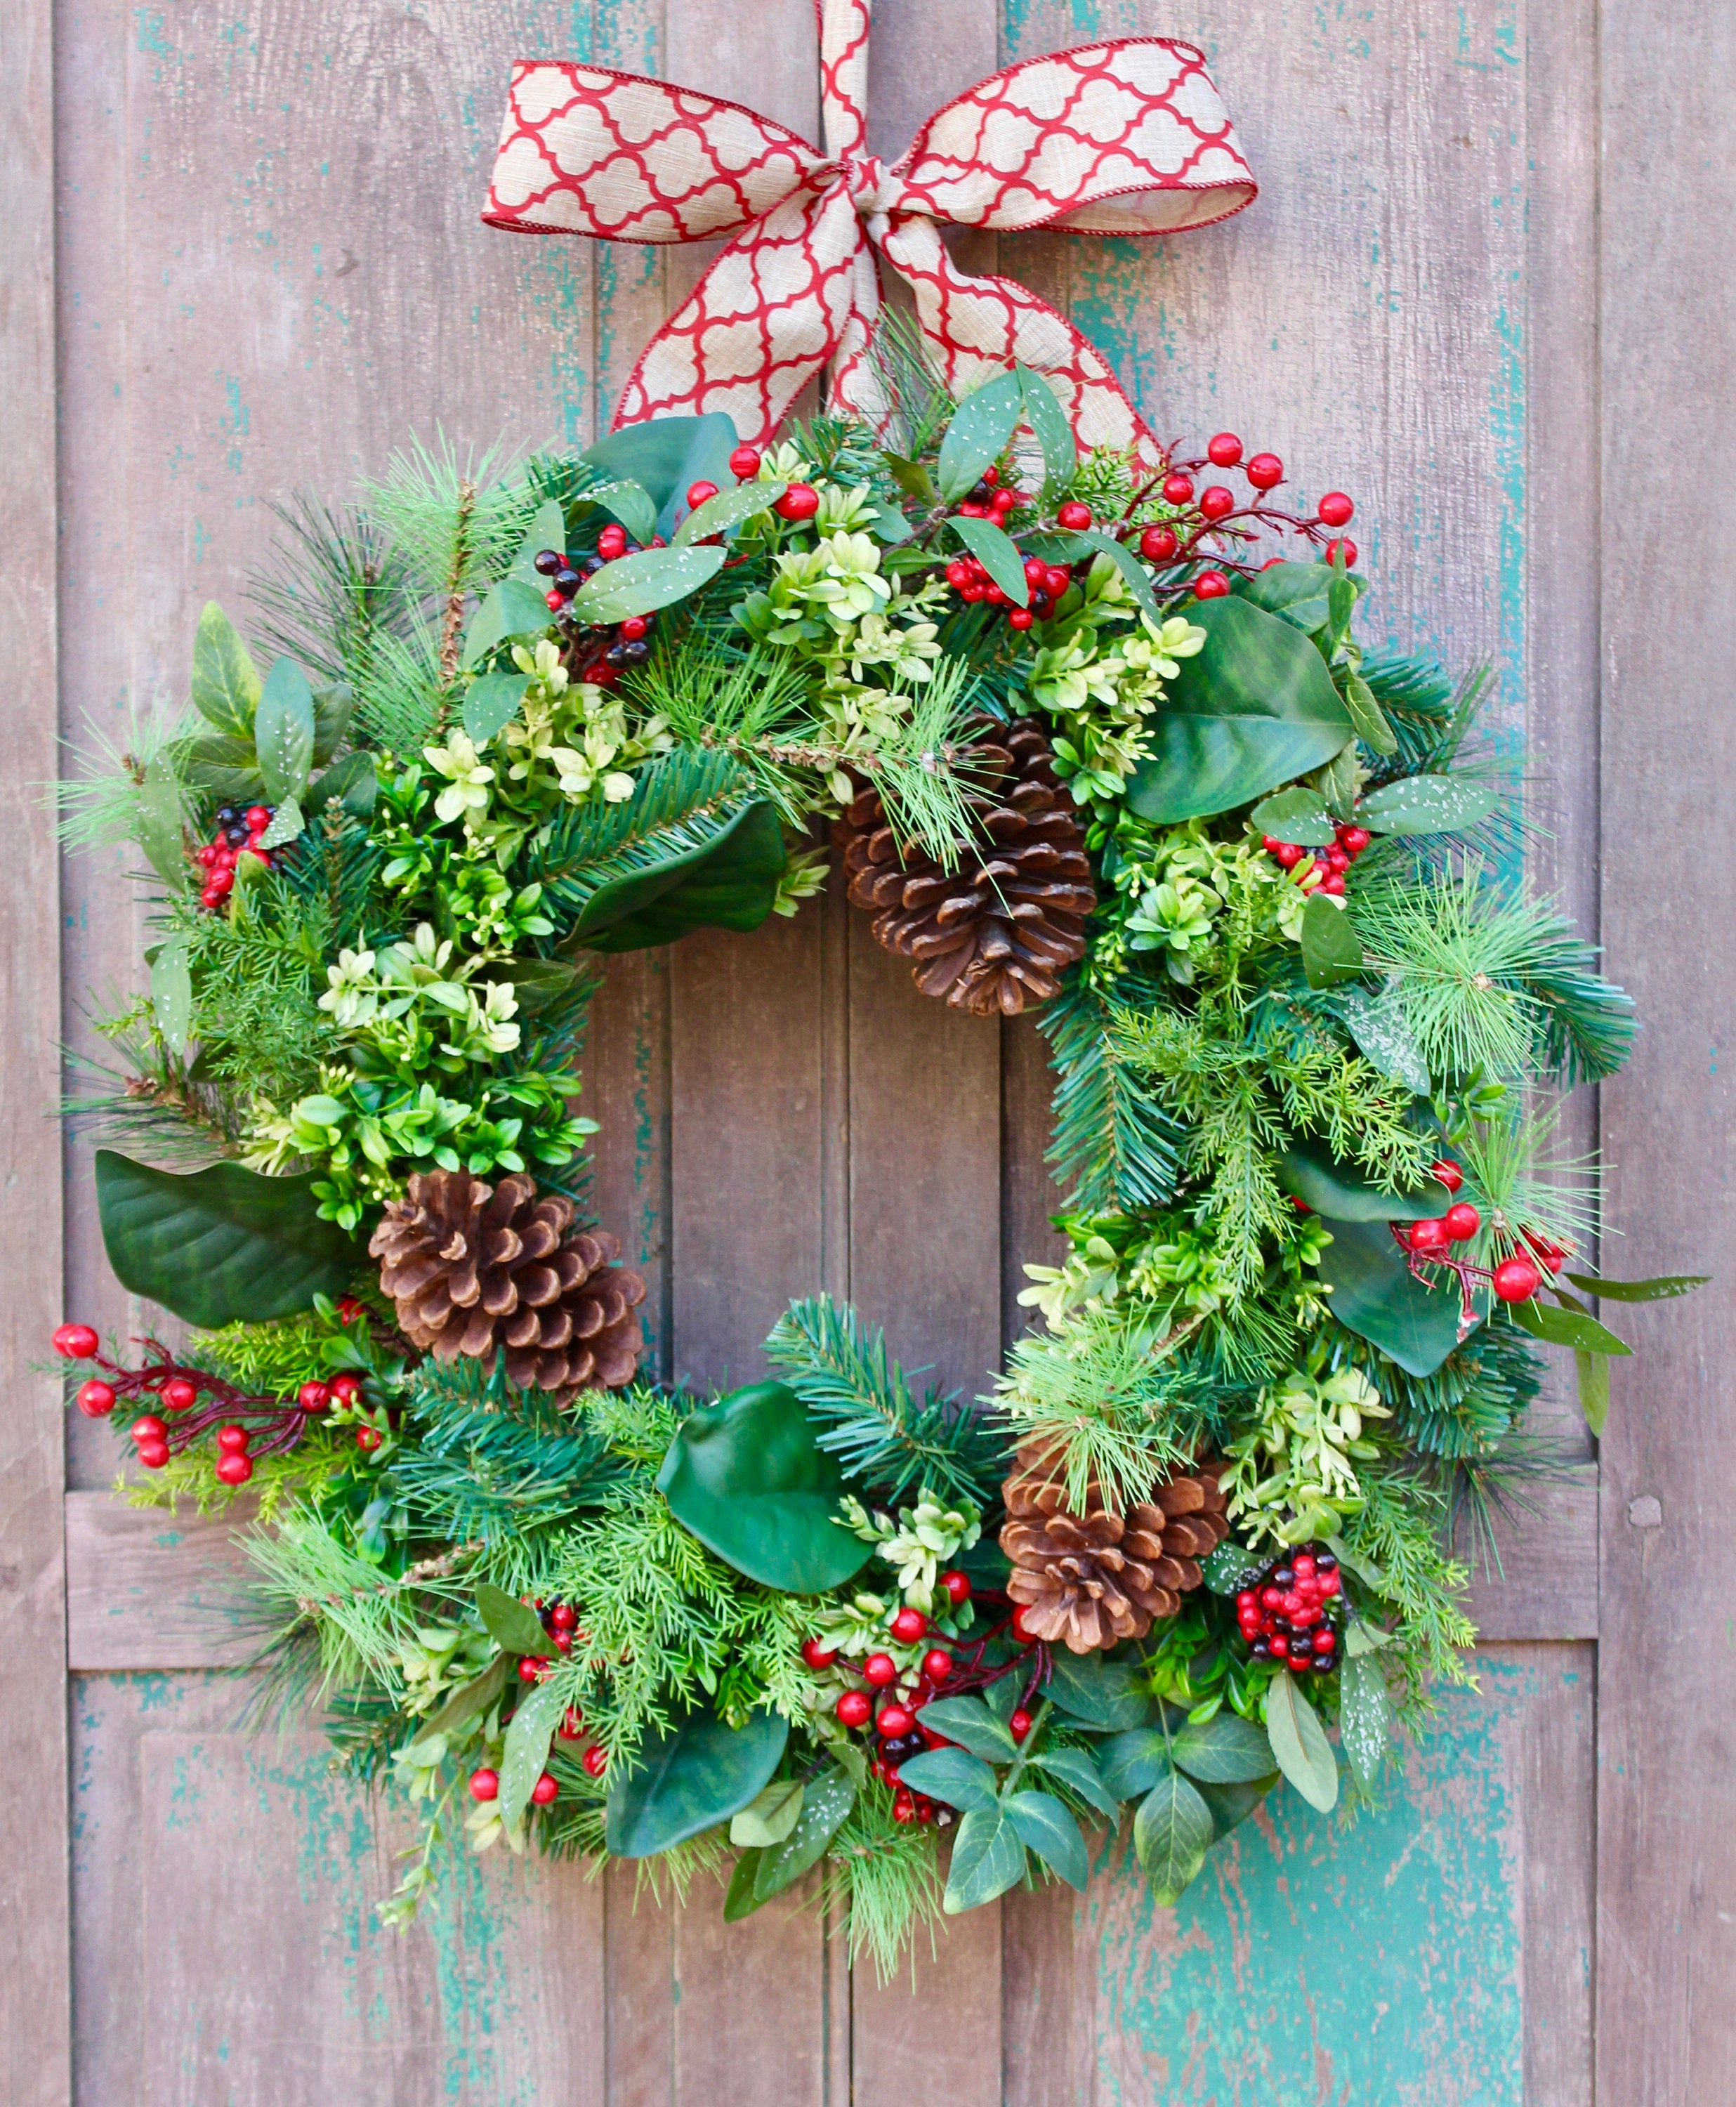 Evergreen Christmas Wreath - Green Holiday Wreath